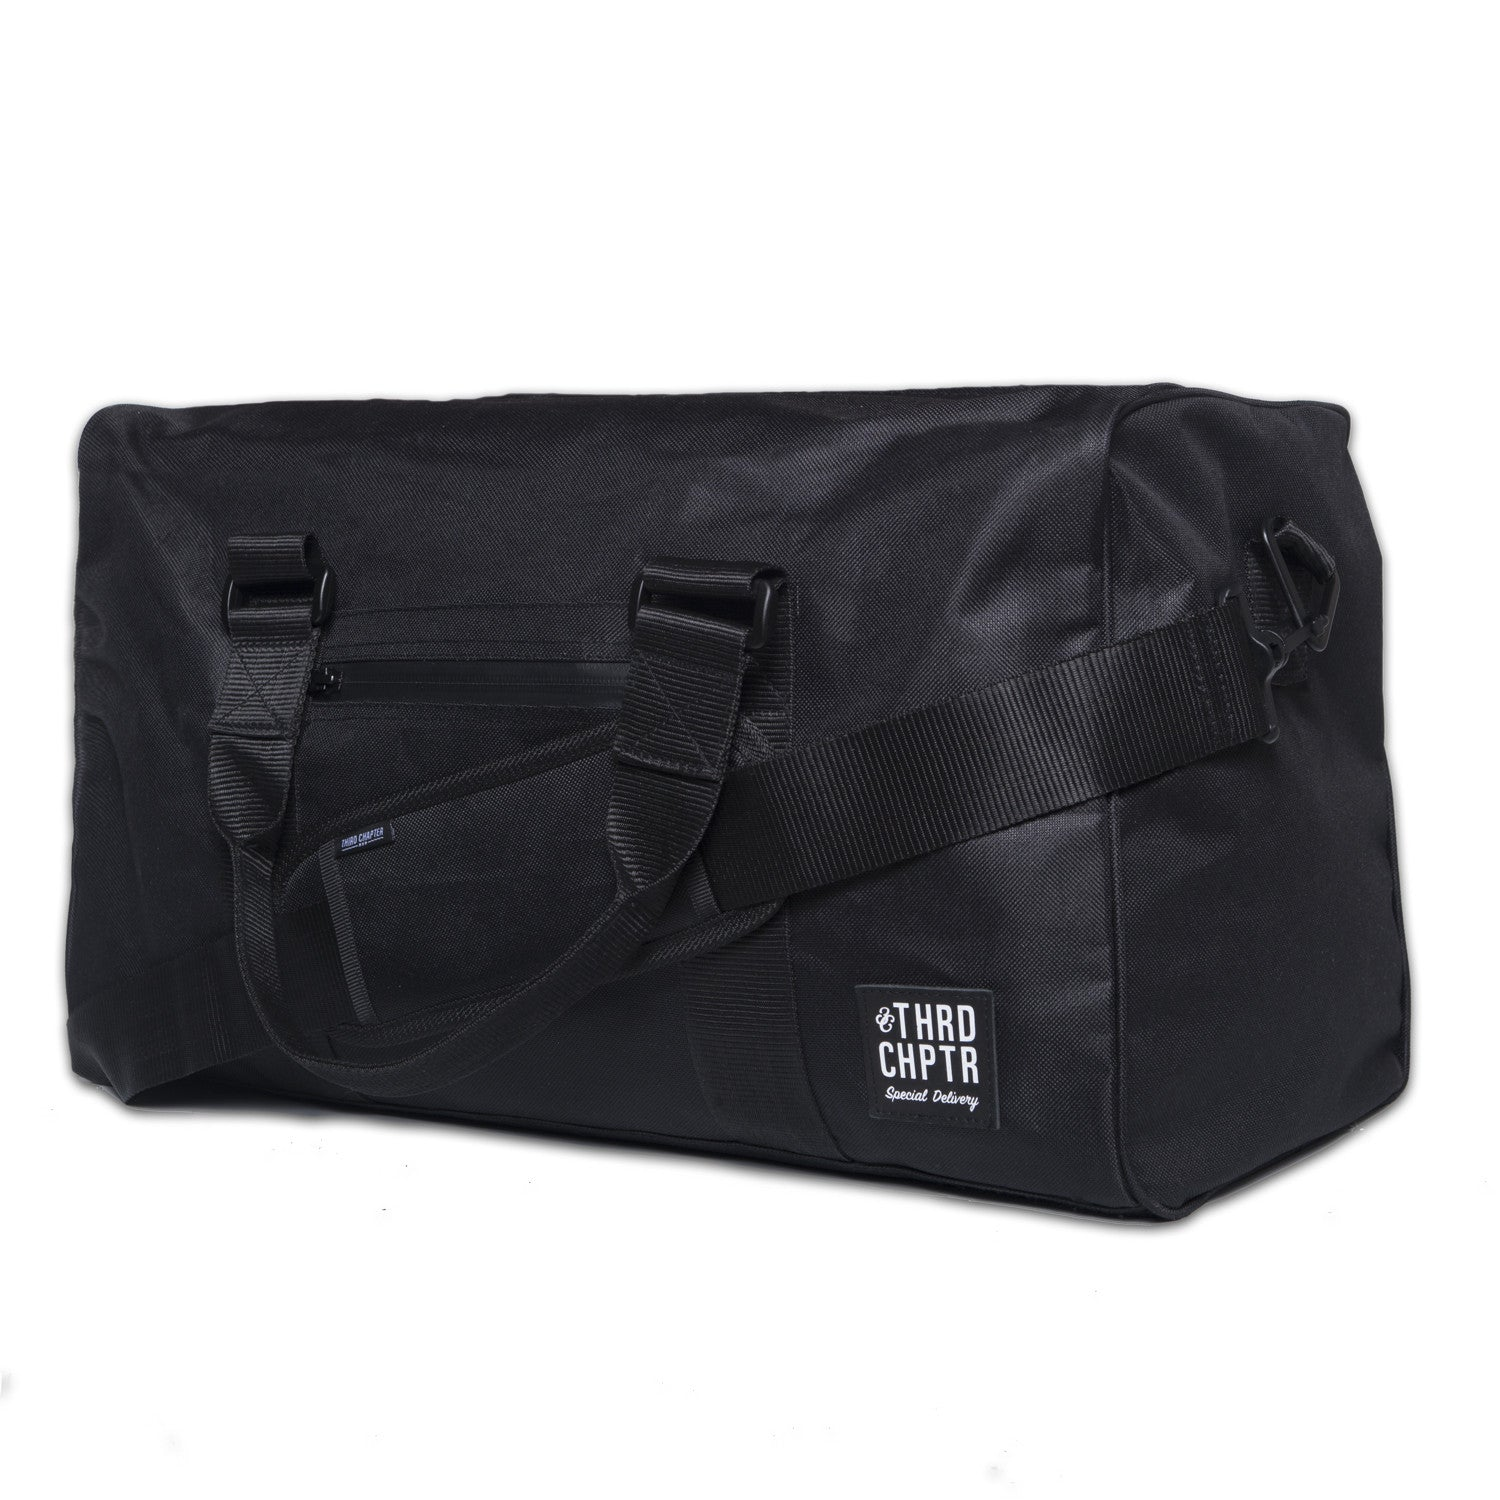 S.D Duffle Bag (Smell Proof) - 3rdchapter - 1